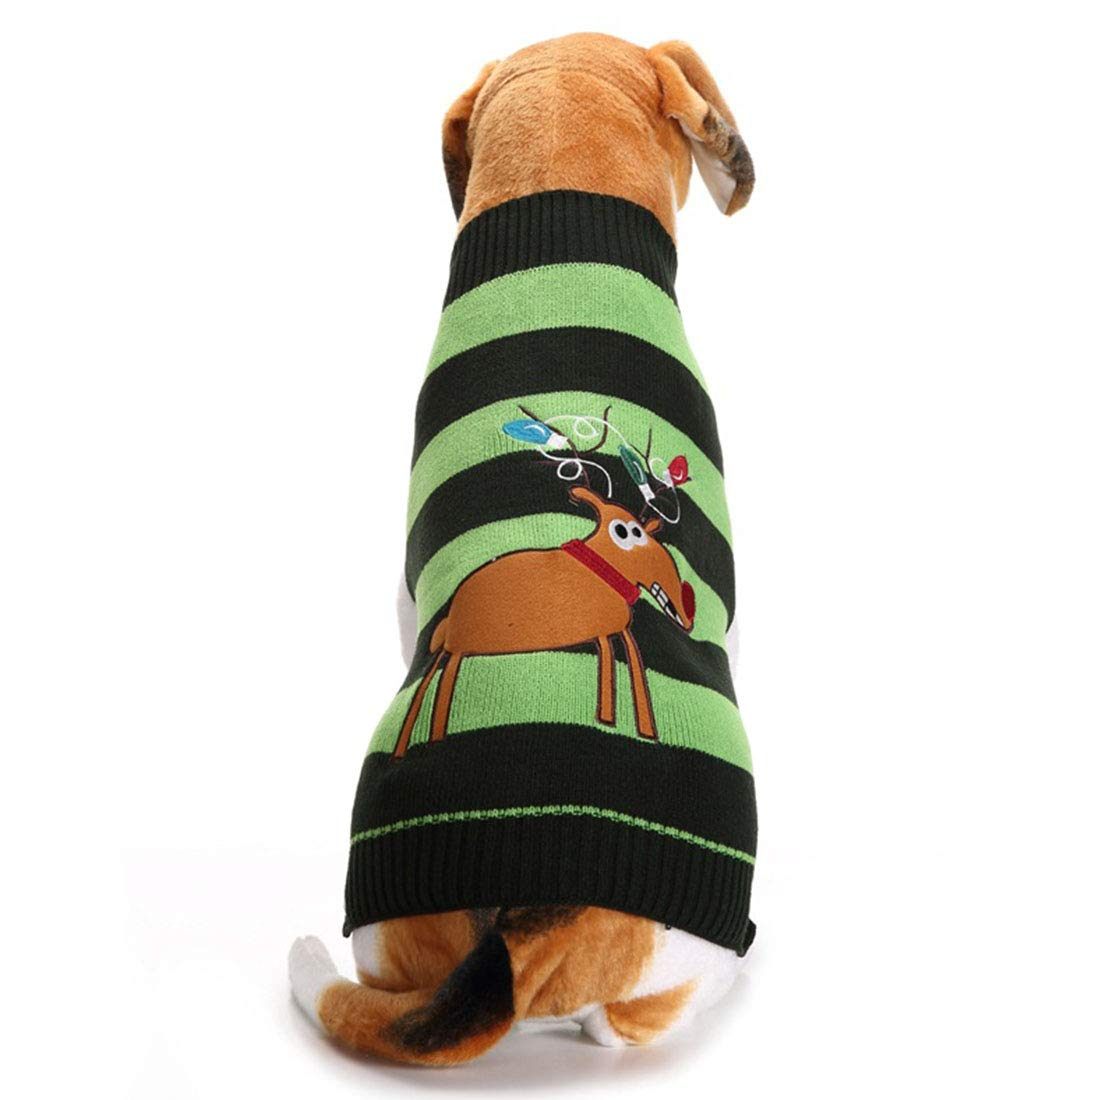 Green S Green S AUSWIEI Autumn and Winter Dog Clothes Christmas Elk Sweater Pet Sweater (color   Green, Size   S)